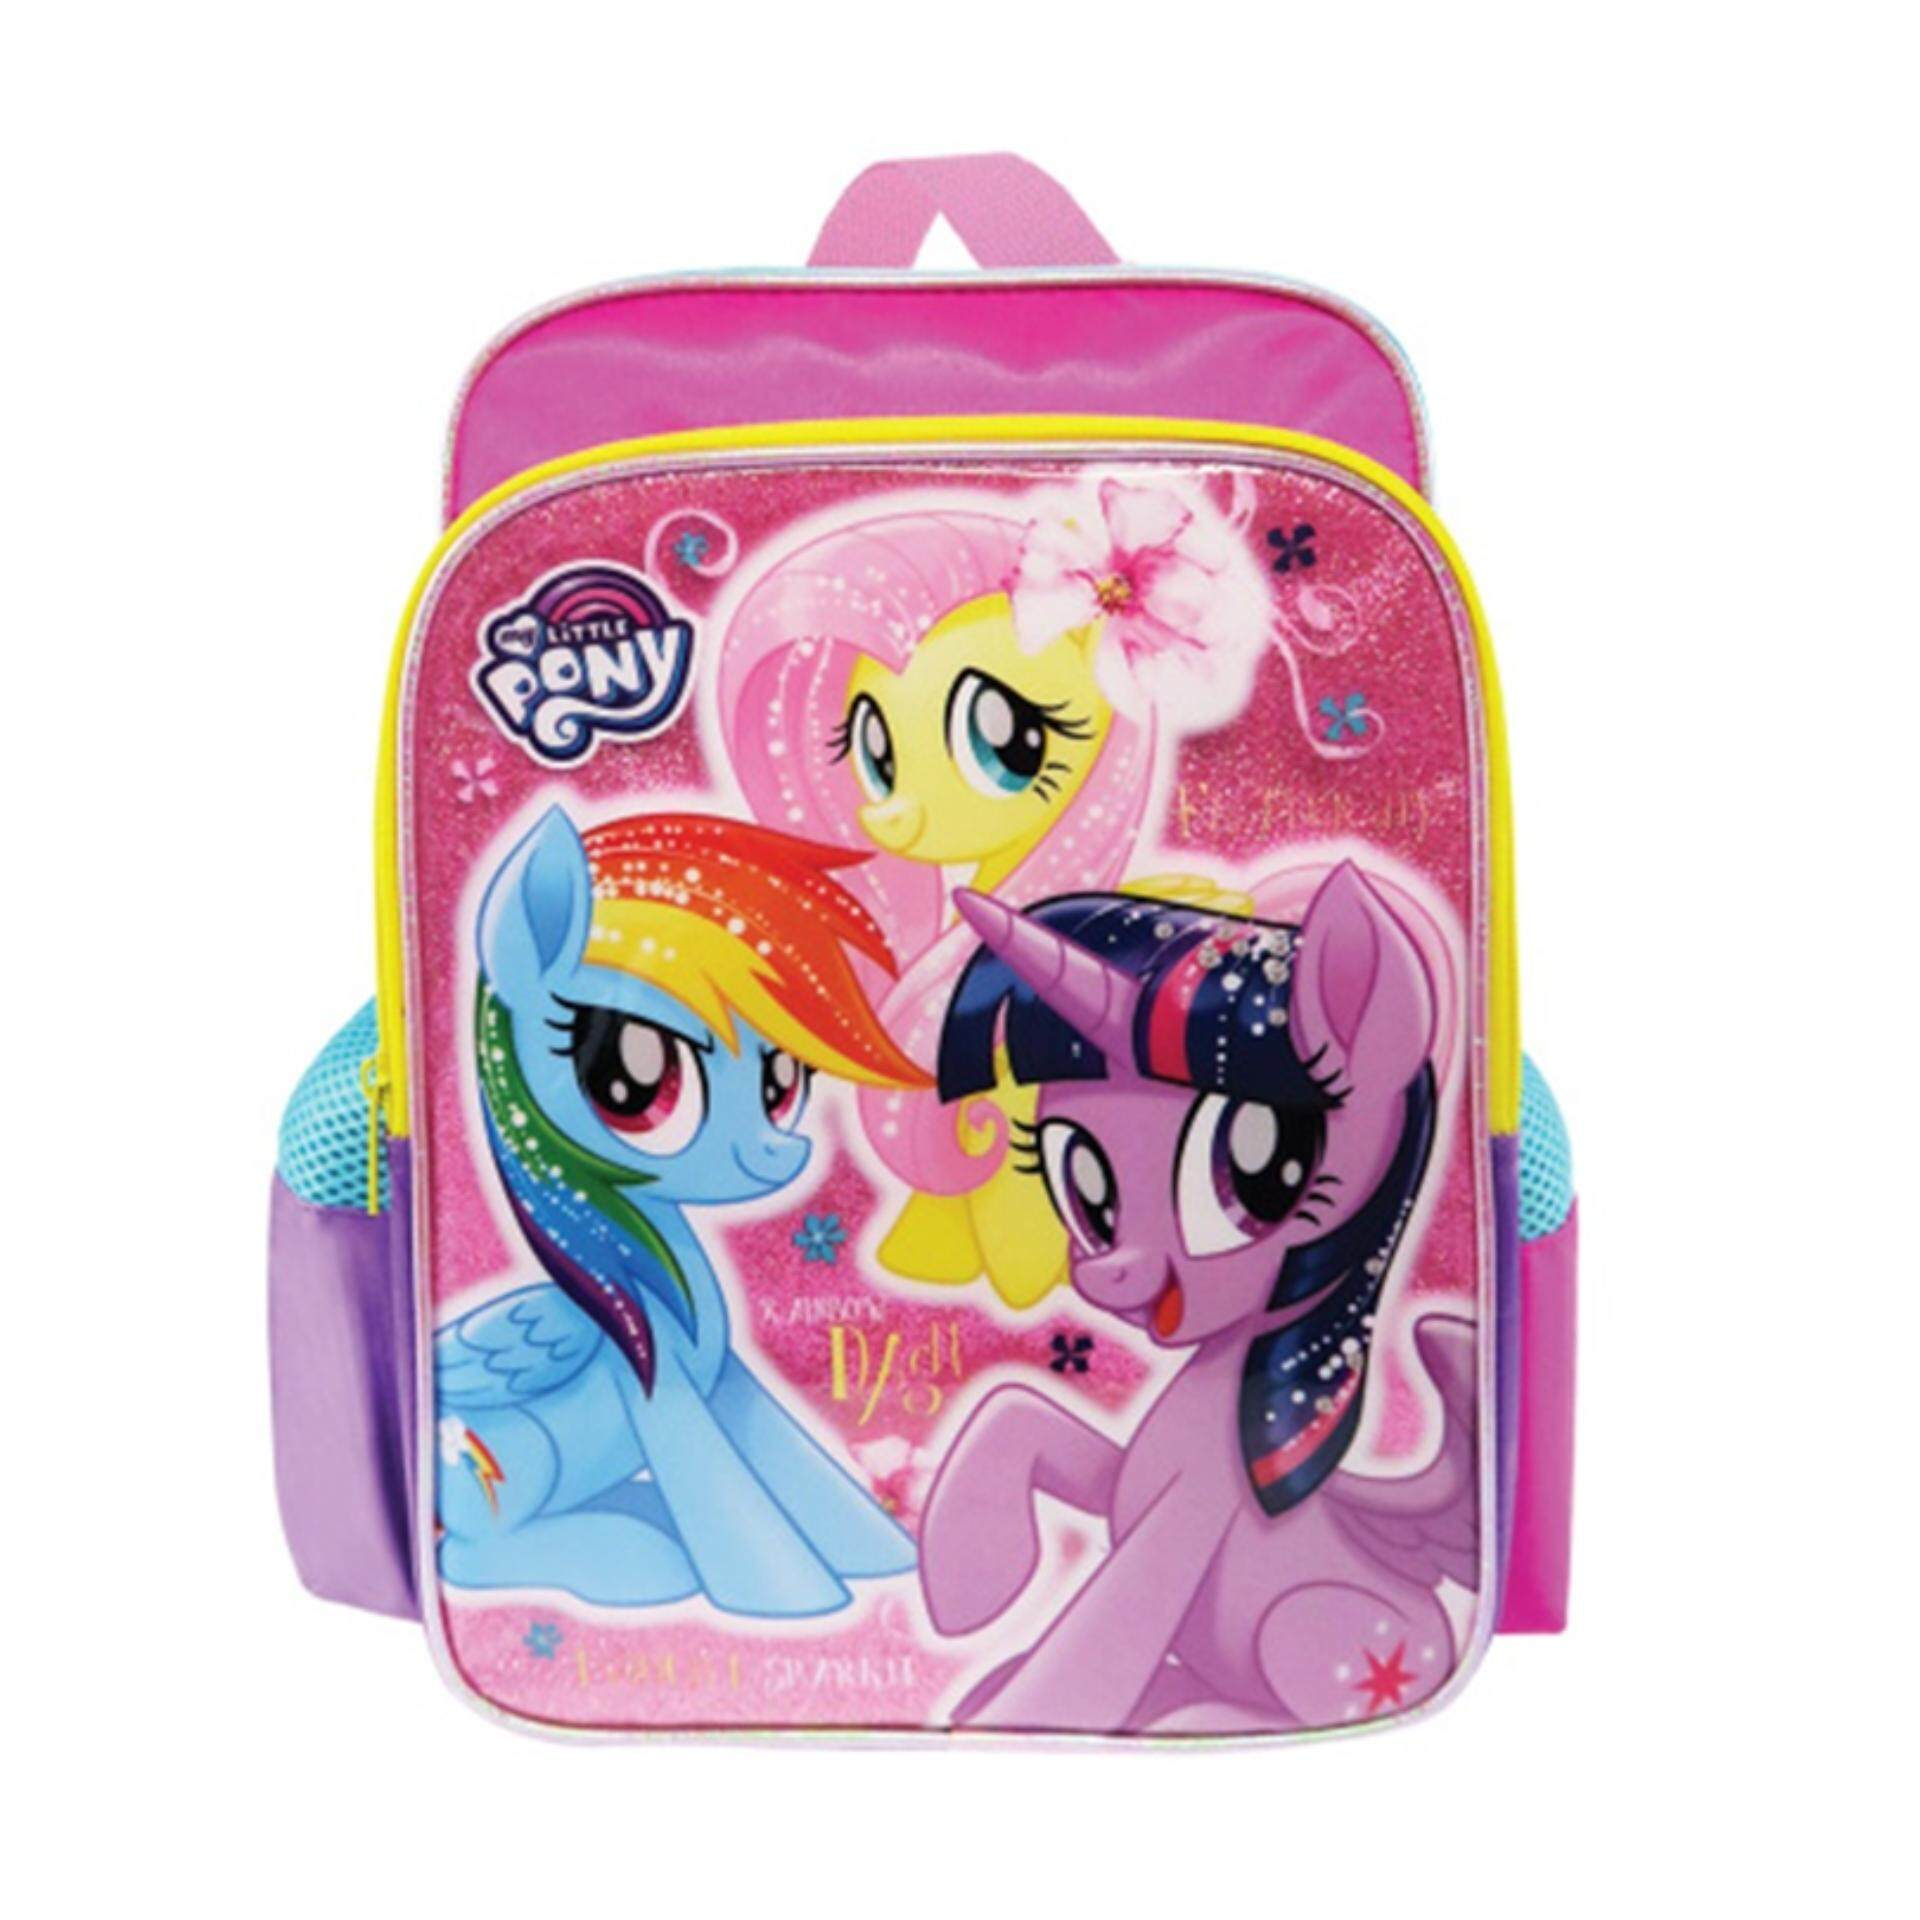 7278caa2cf9d My Little Pony Backpack School Bag 12 Inches - Pink Colour